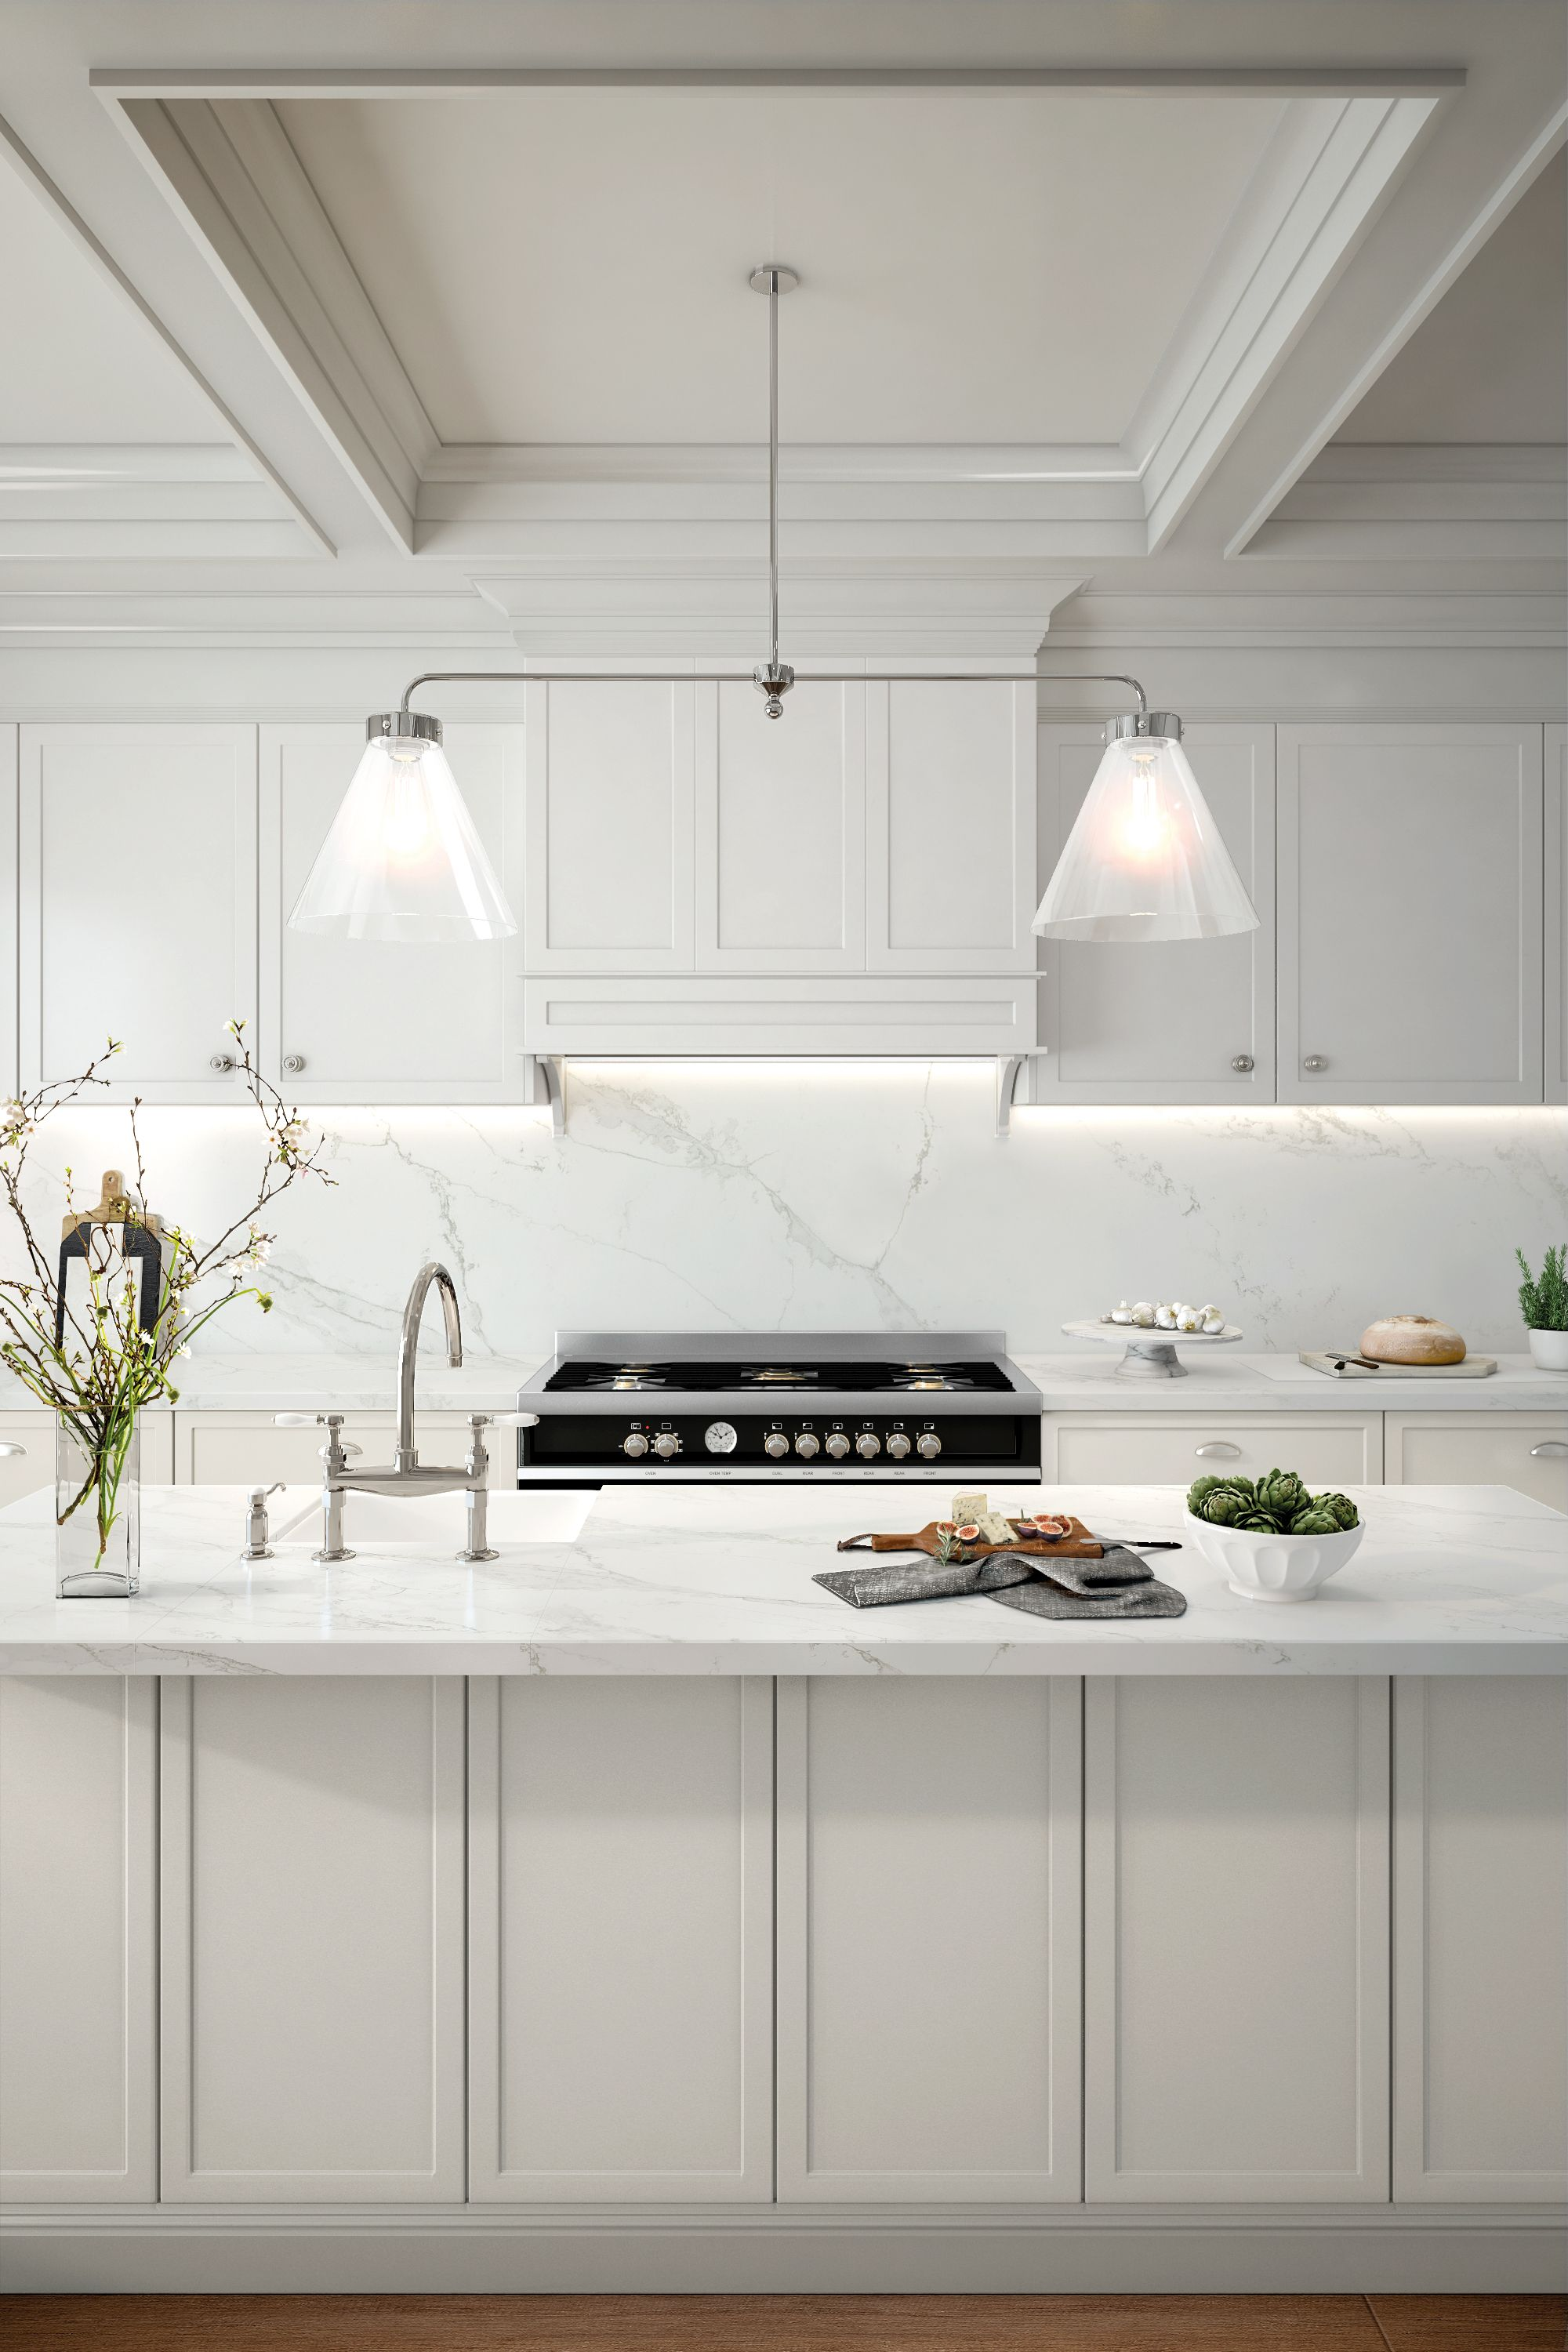 Zen Design Kitchen Cabinets Fascinating Backsplash Clean Lines Nantucket Spec In 12 Kitchen 2013 7